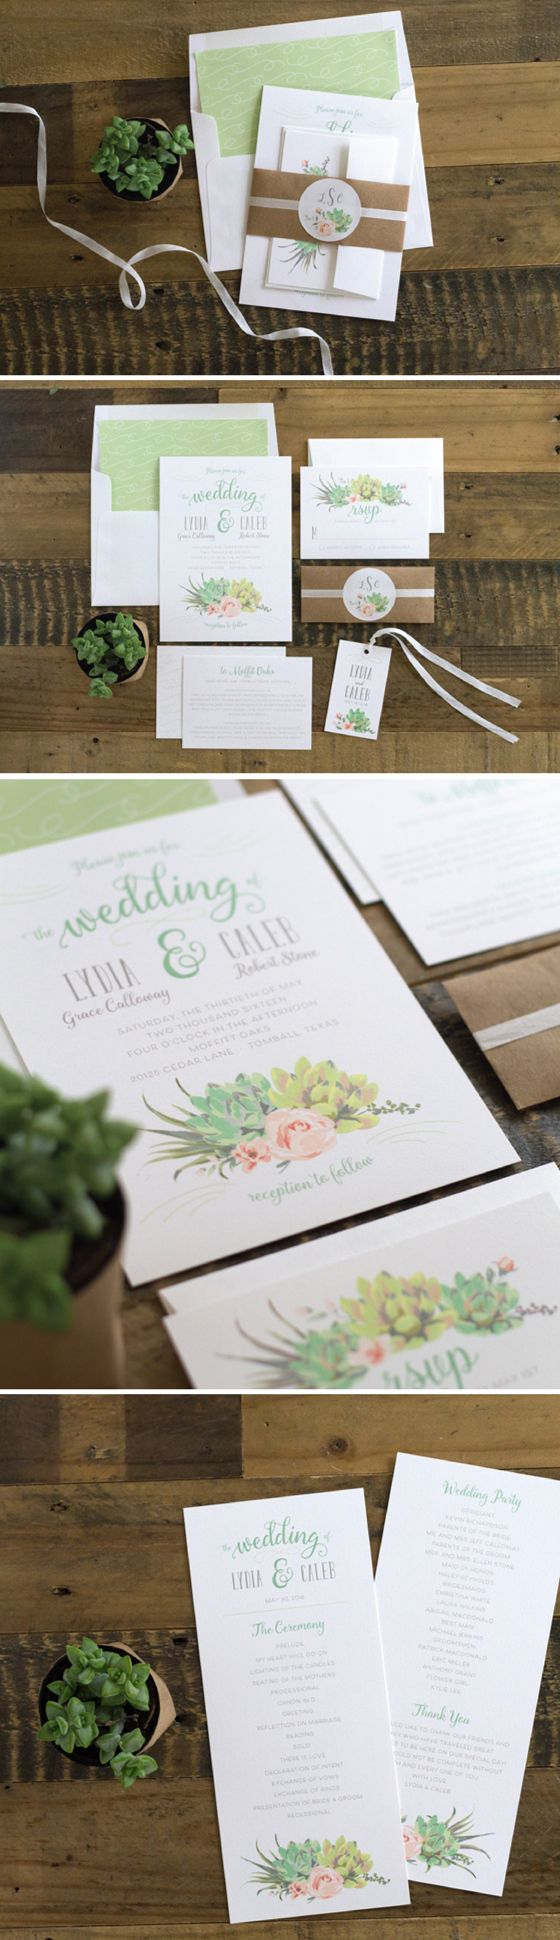 how much do invitations for wedding cost%0A Our Romantic Succulents wedding invitation is perfect for incorporating  succulents in your wedding